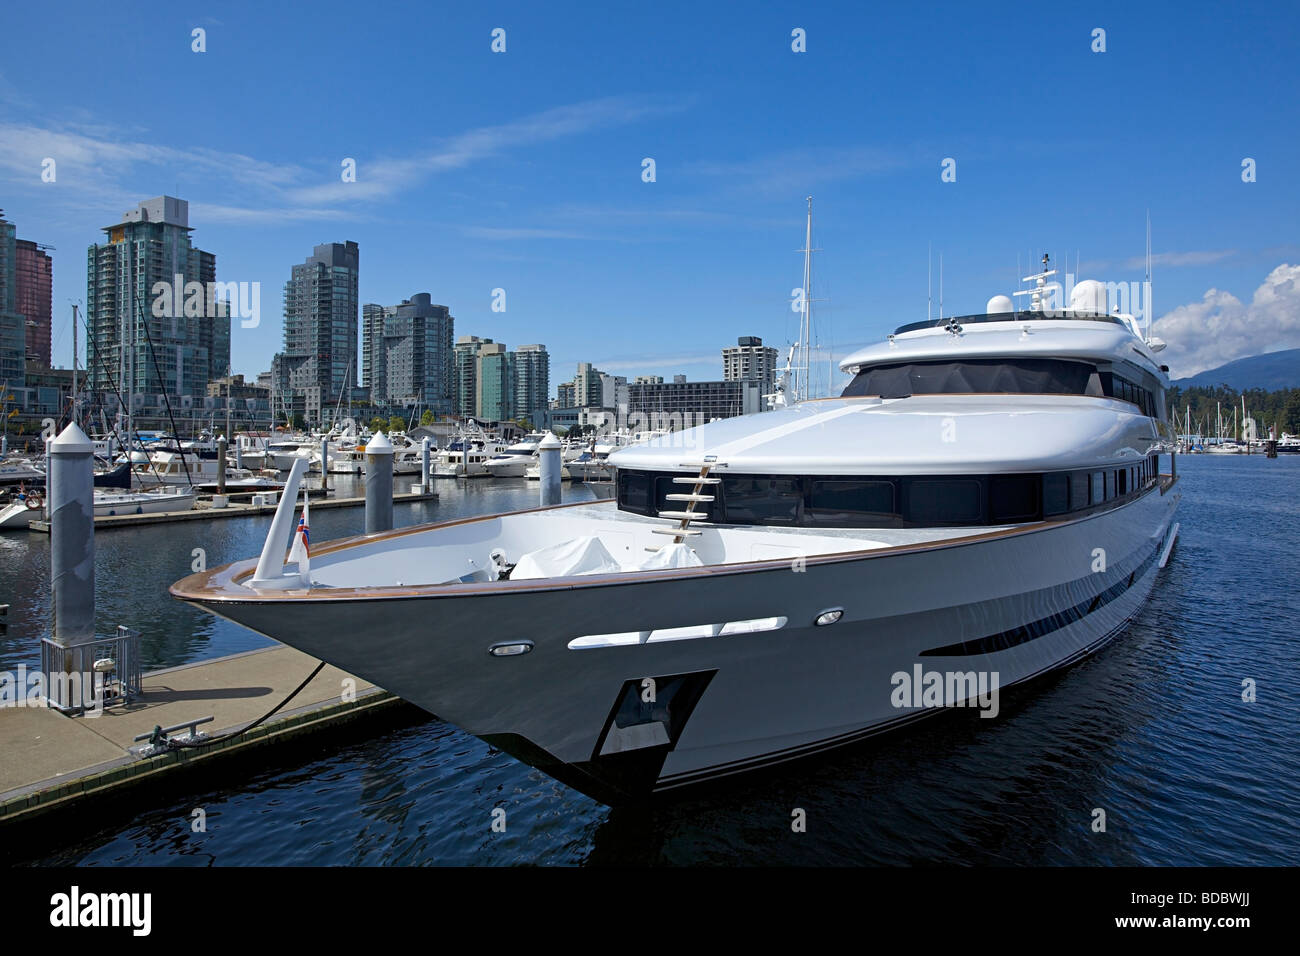 Luxury yacht docked in Coal Harbour, Vancouver, British Columbia, Canada - Stock Image